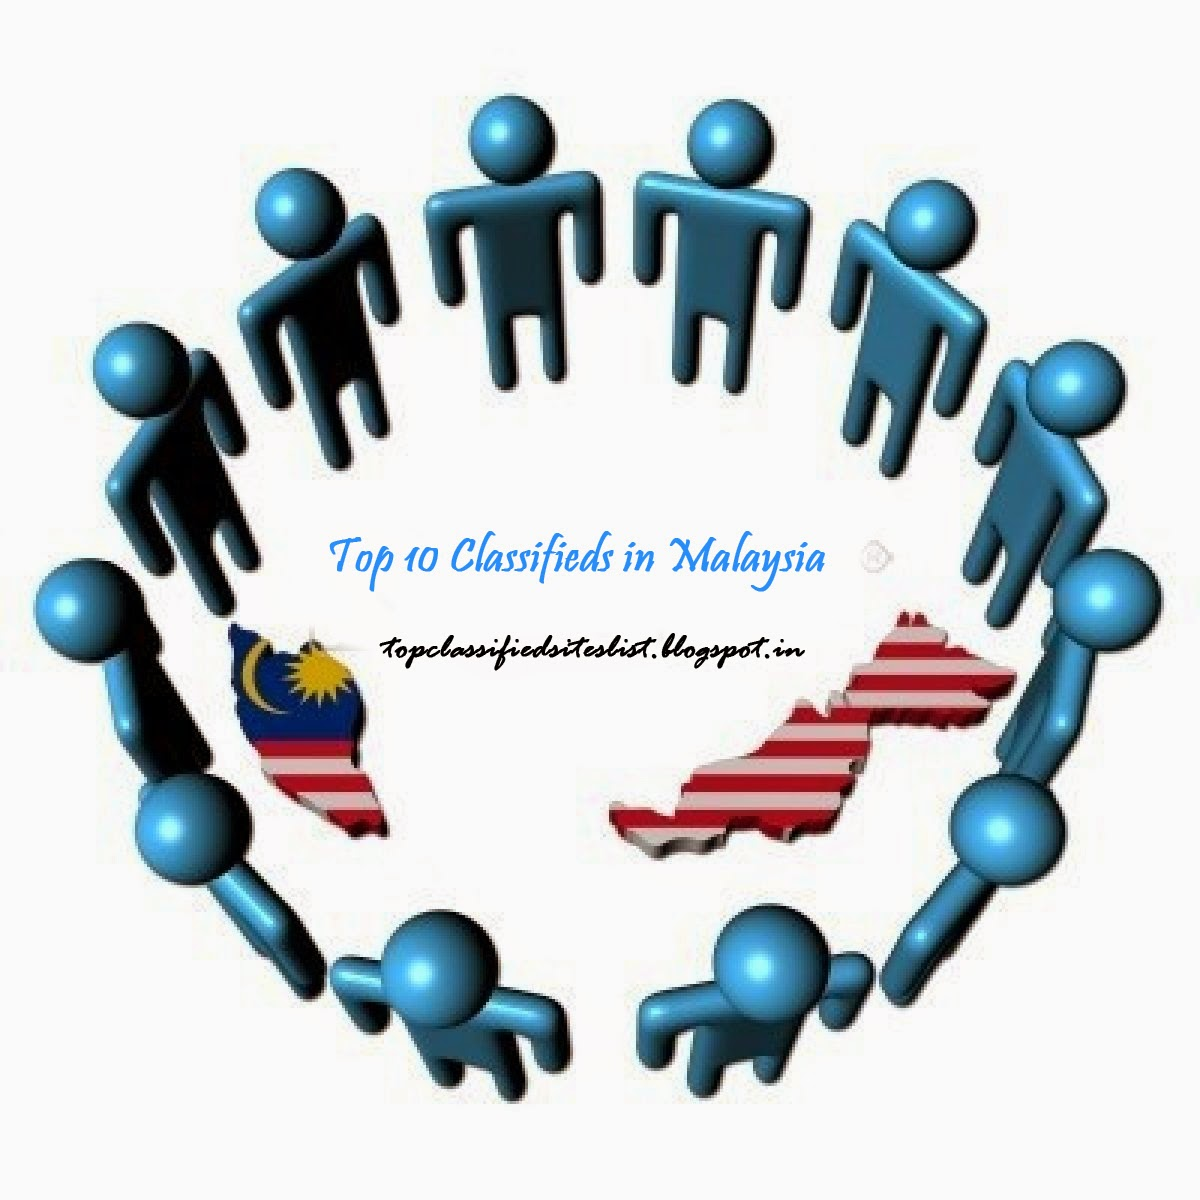 Post Free Classifieds in Malaysia for free classified ads